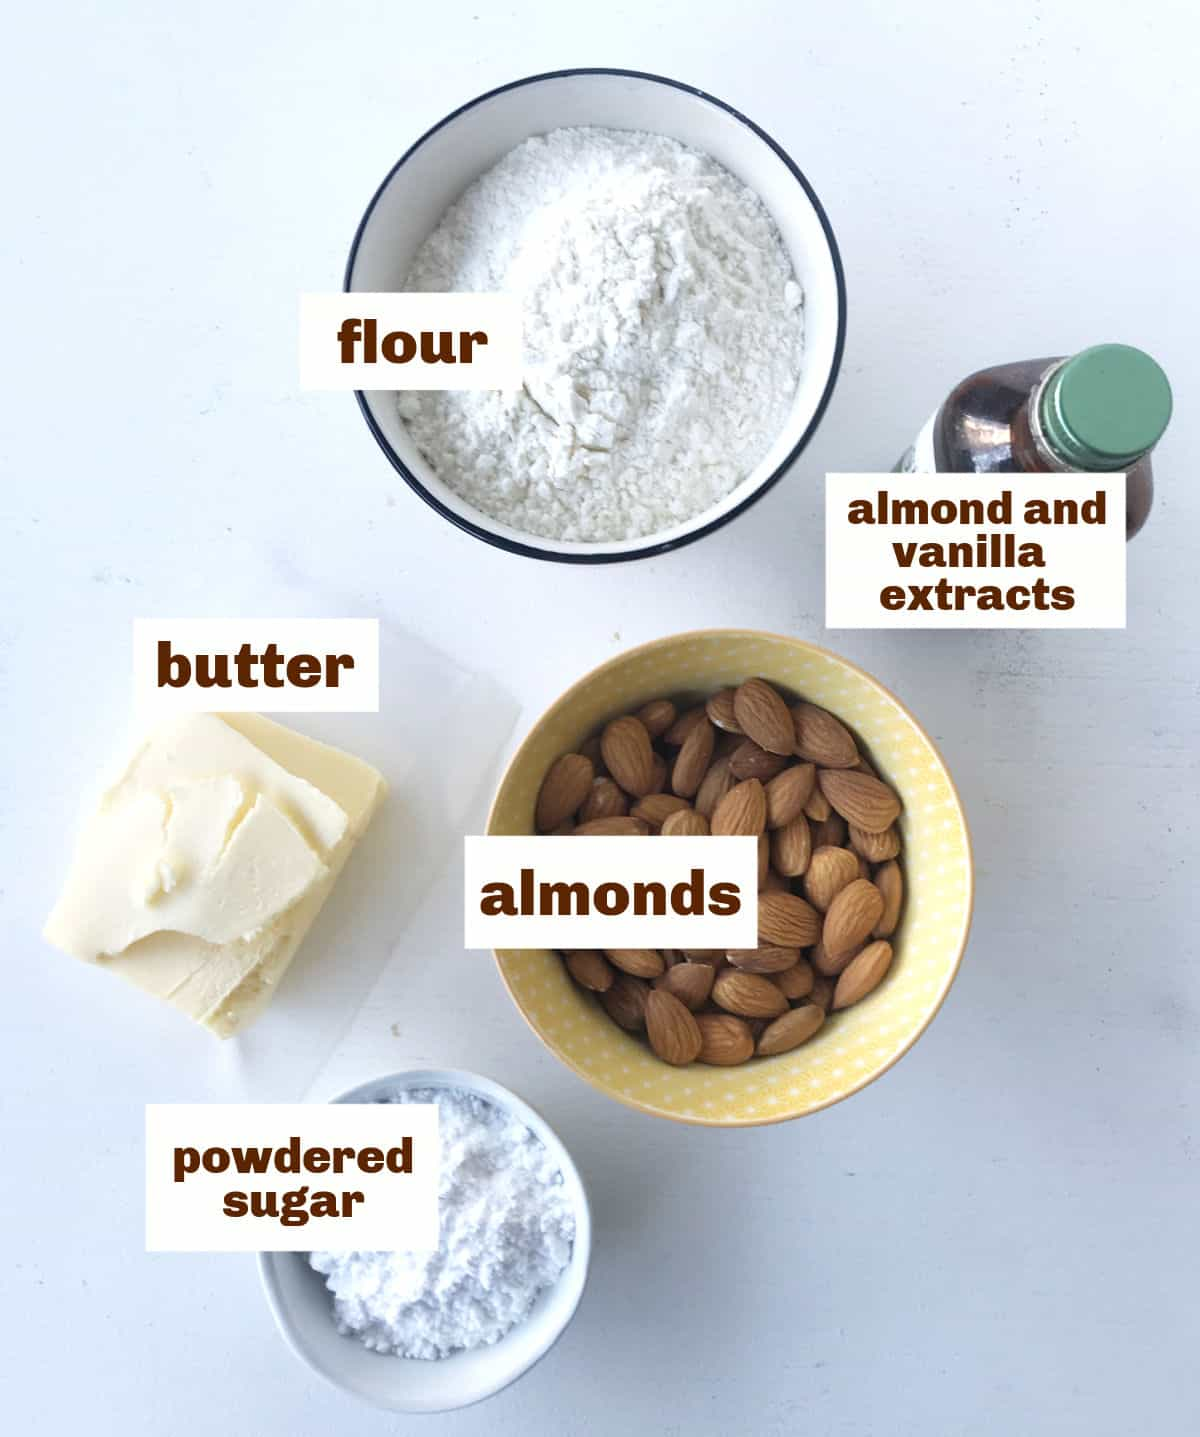 Bowls with almonds, flour and sugar, chunk of butter and a small bottle on a whitish surface